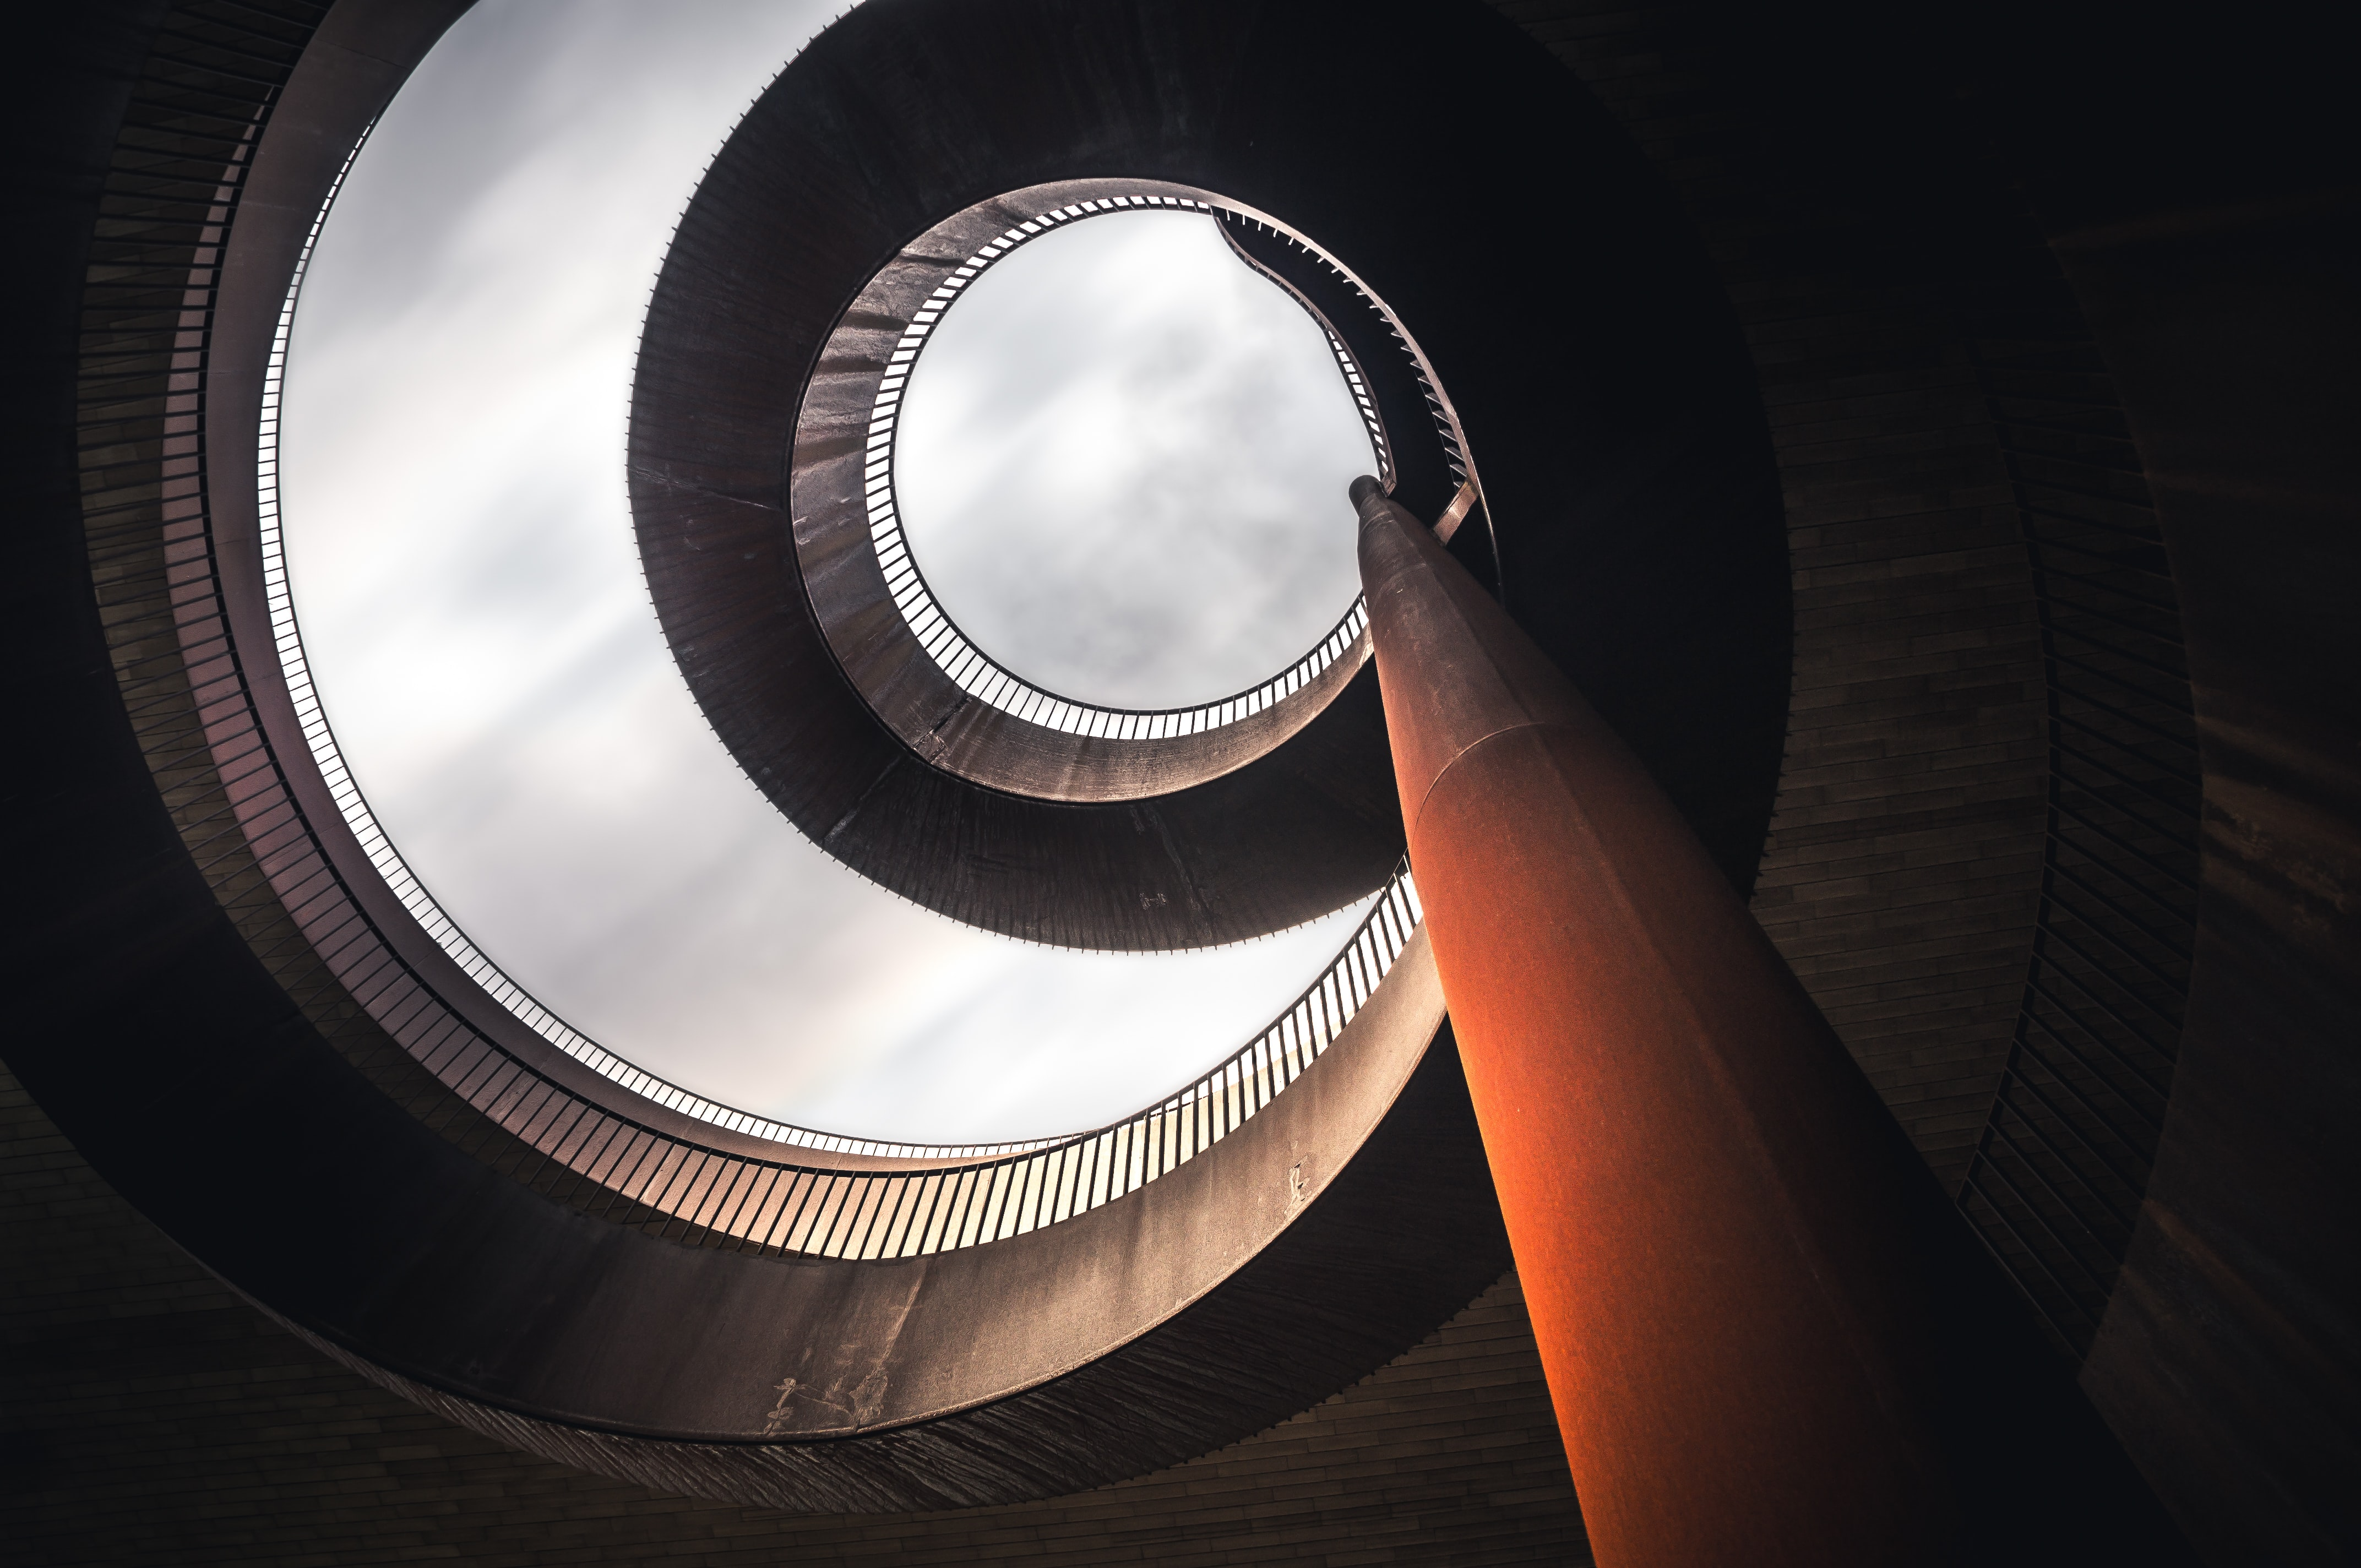 low angle photography of concrete spiral stairs